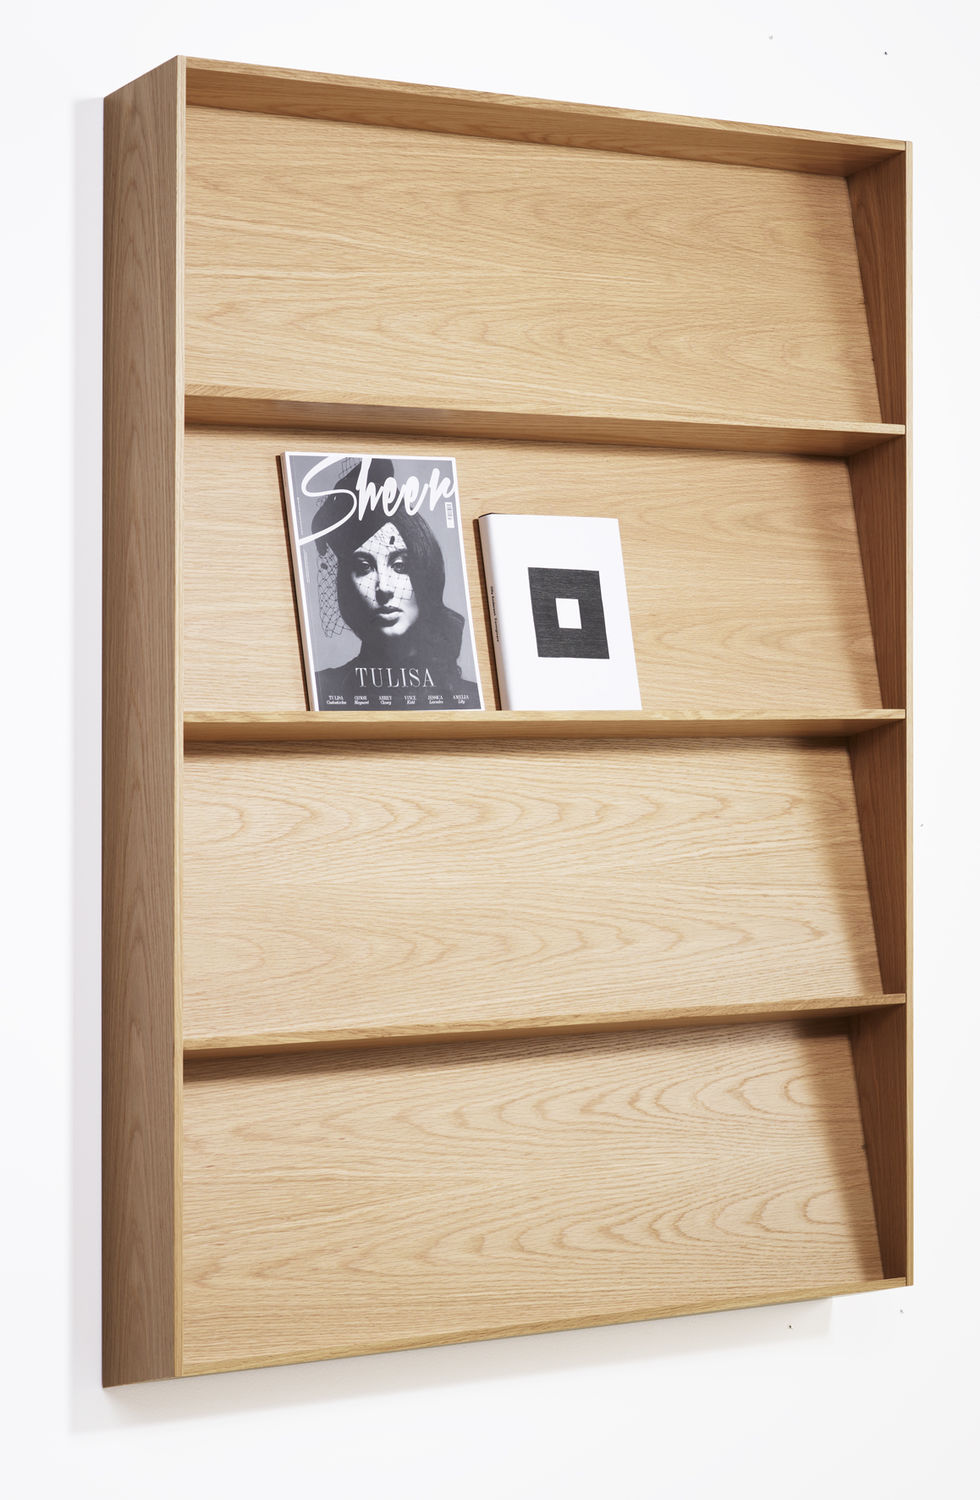 Wall mounted display rack periodicals oak slope by l wall mounted display rack periodicals oak slope by l pettersson l amipublicfo Gallery